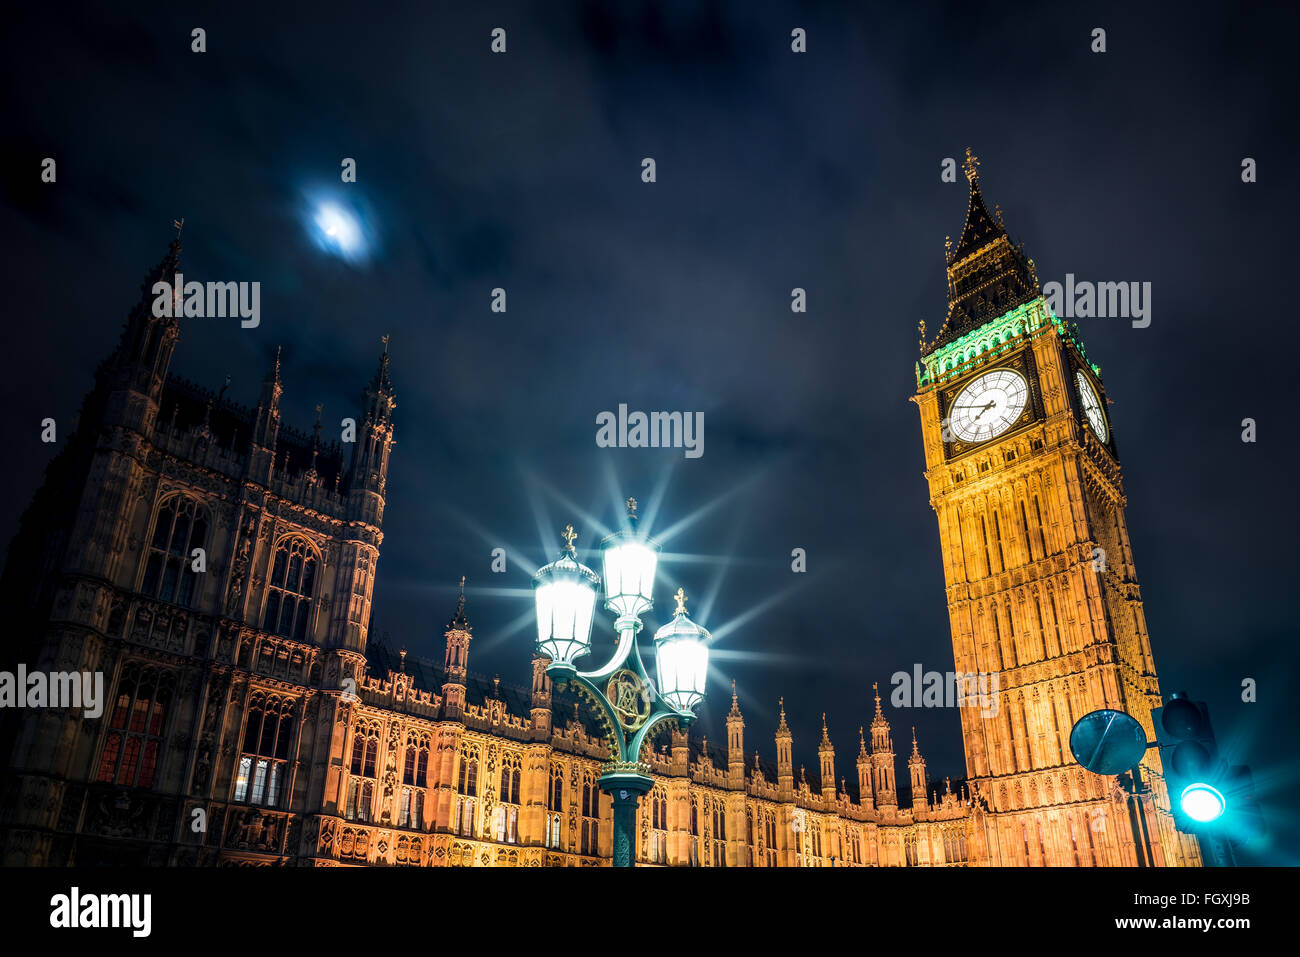 A photo of Big Ben and parliament in Westminster. - Stock Image